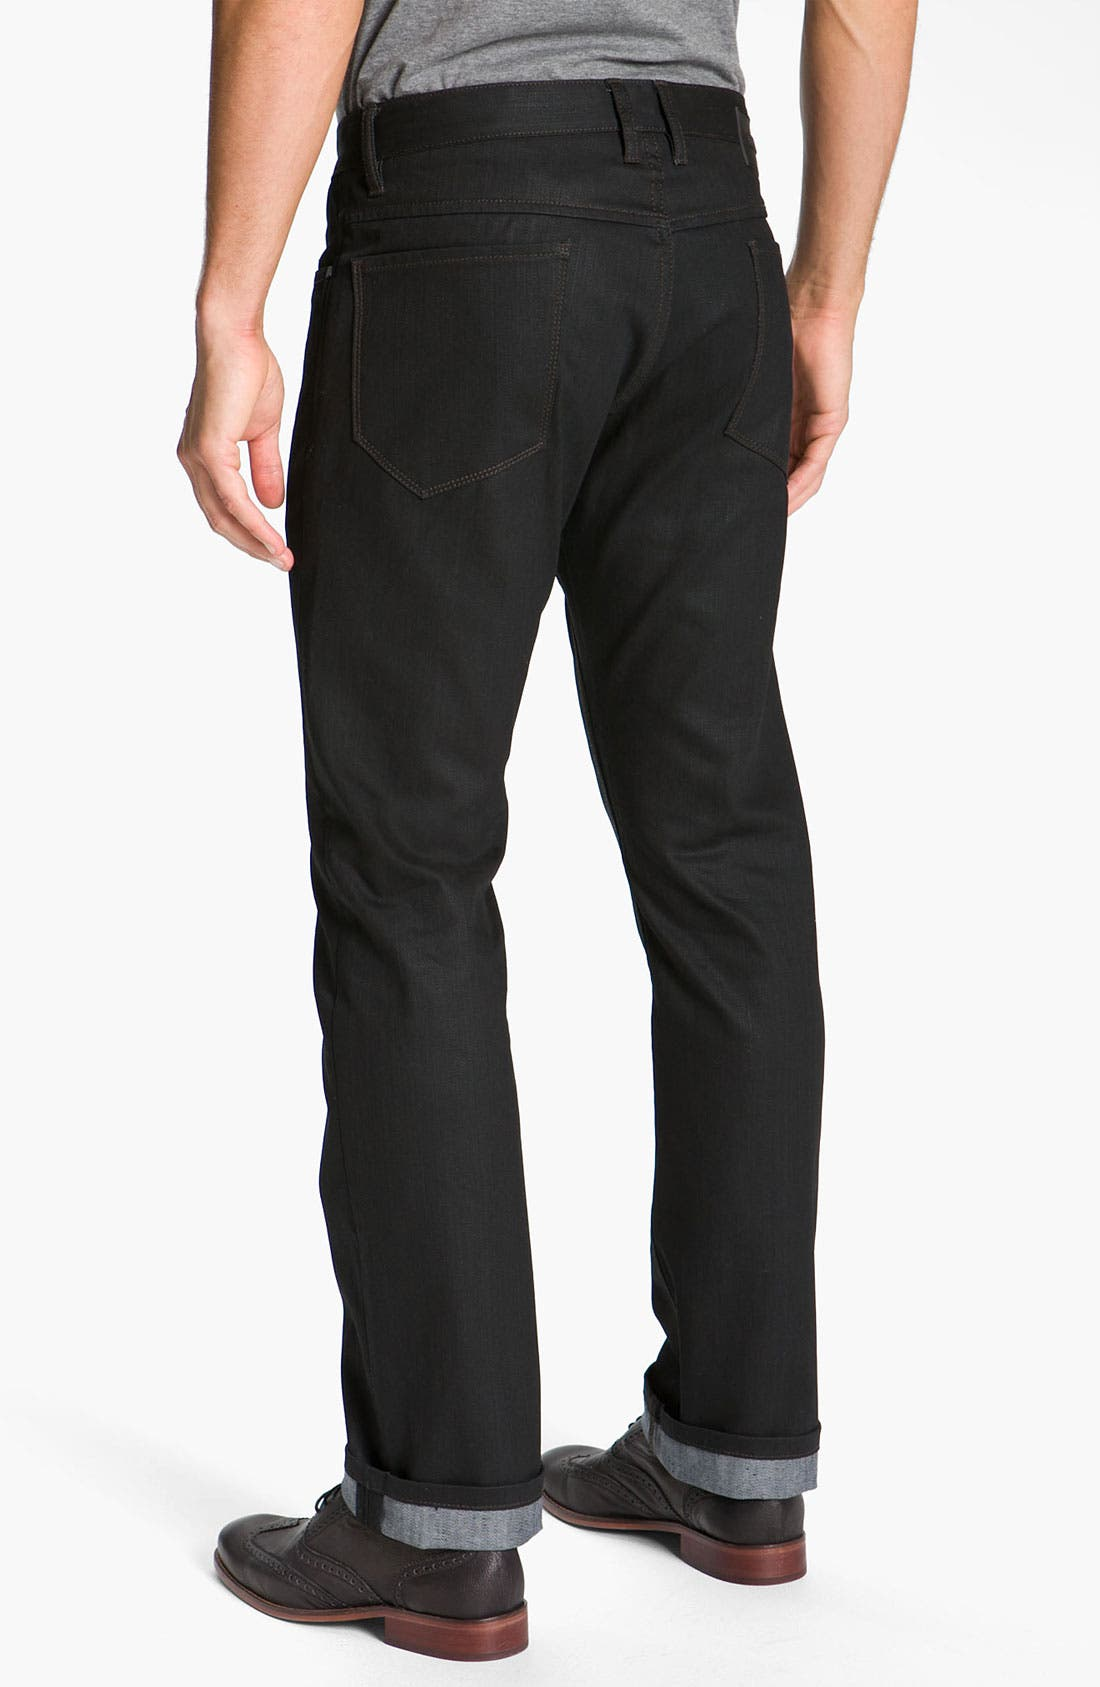 Main Image - Comune 'Rudy' Coated Slim Straight Leg Jeans (Black Indigo)